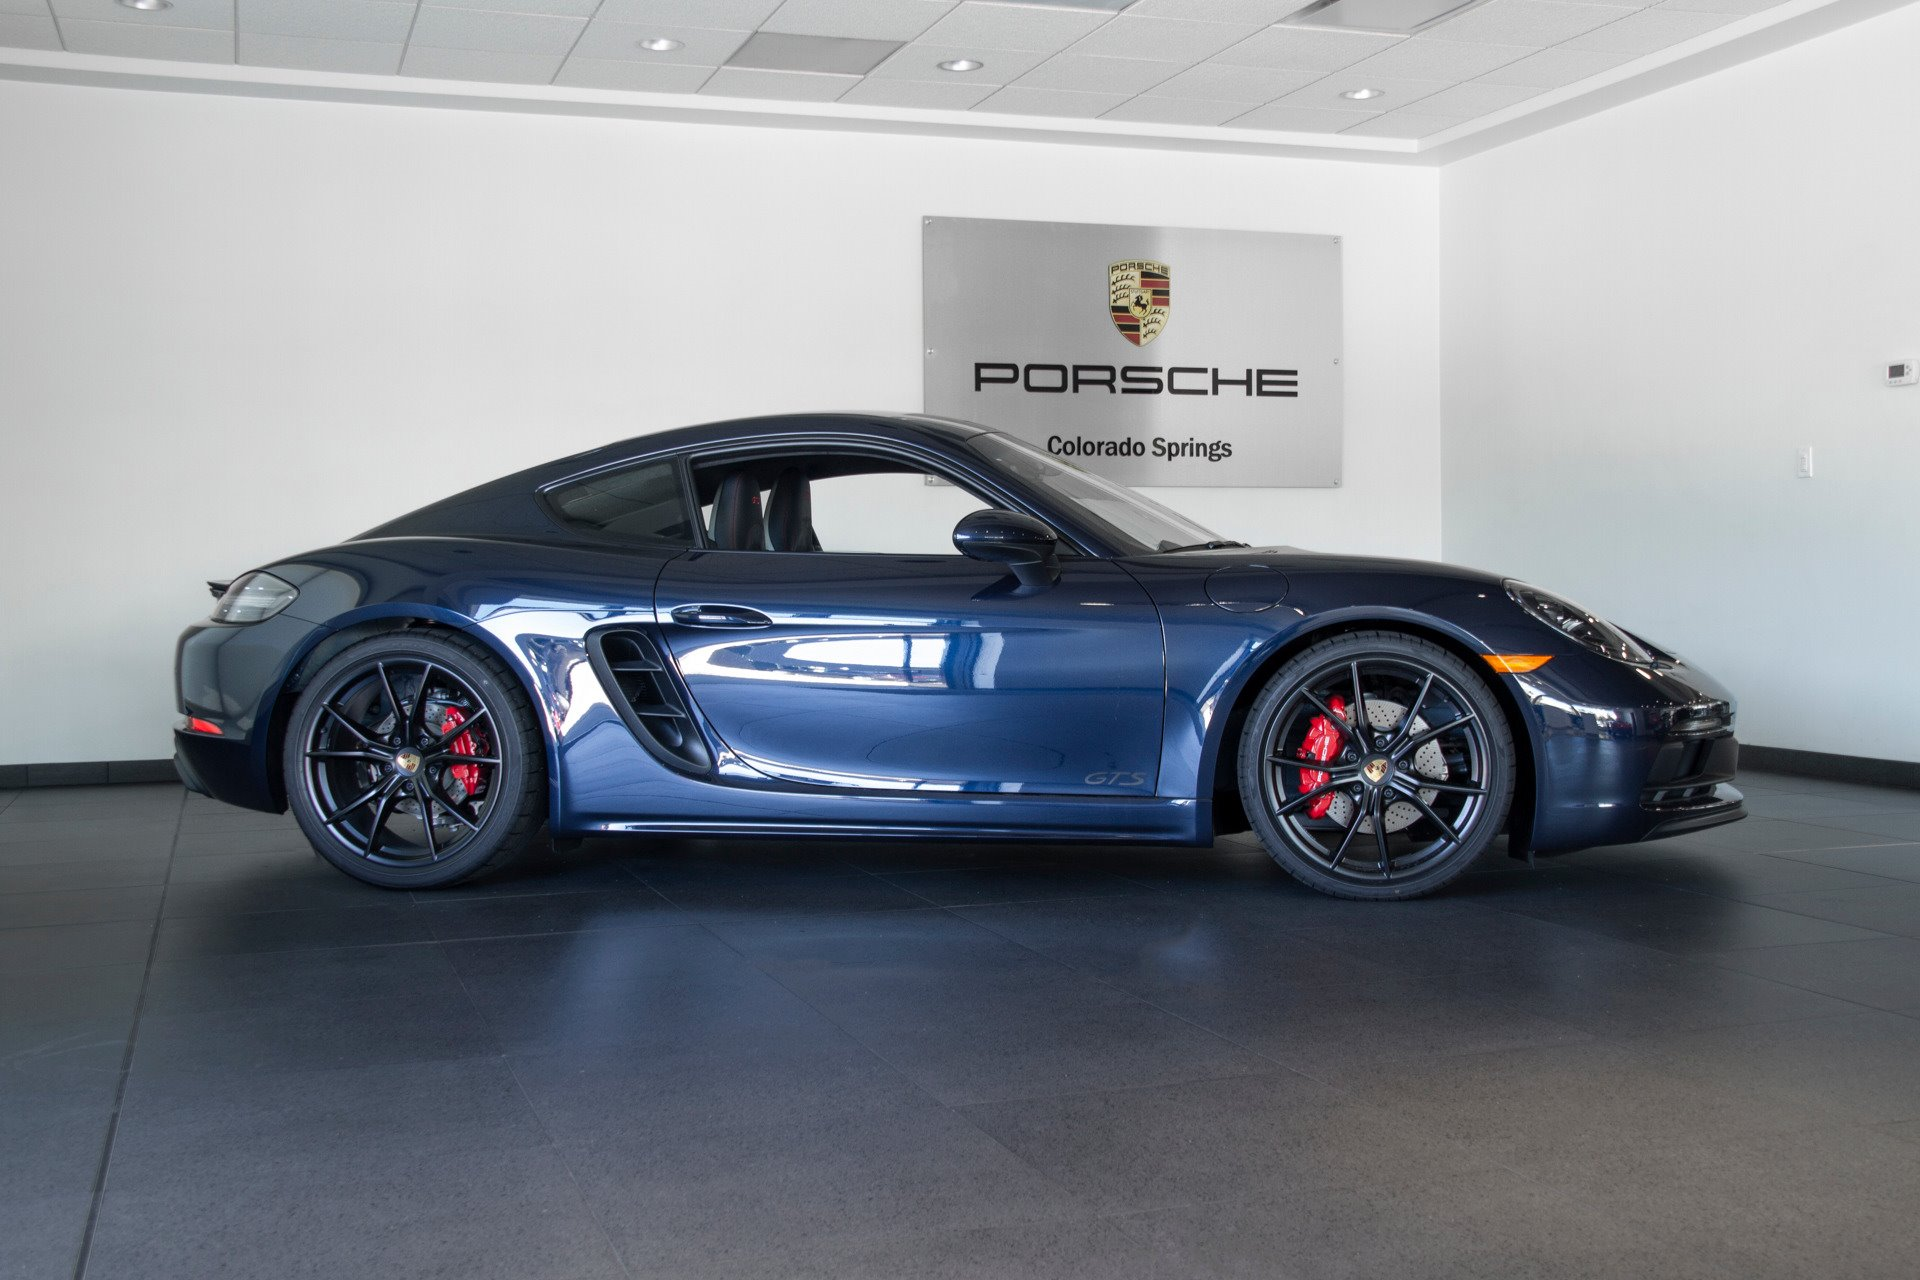 New 2019 Porsche-718 Cayman Base 718 Cayman for sale $56,900 at M and V Leasing in Brooklyn NY 11223 1